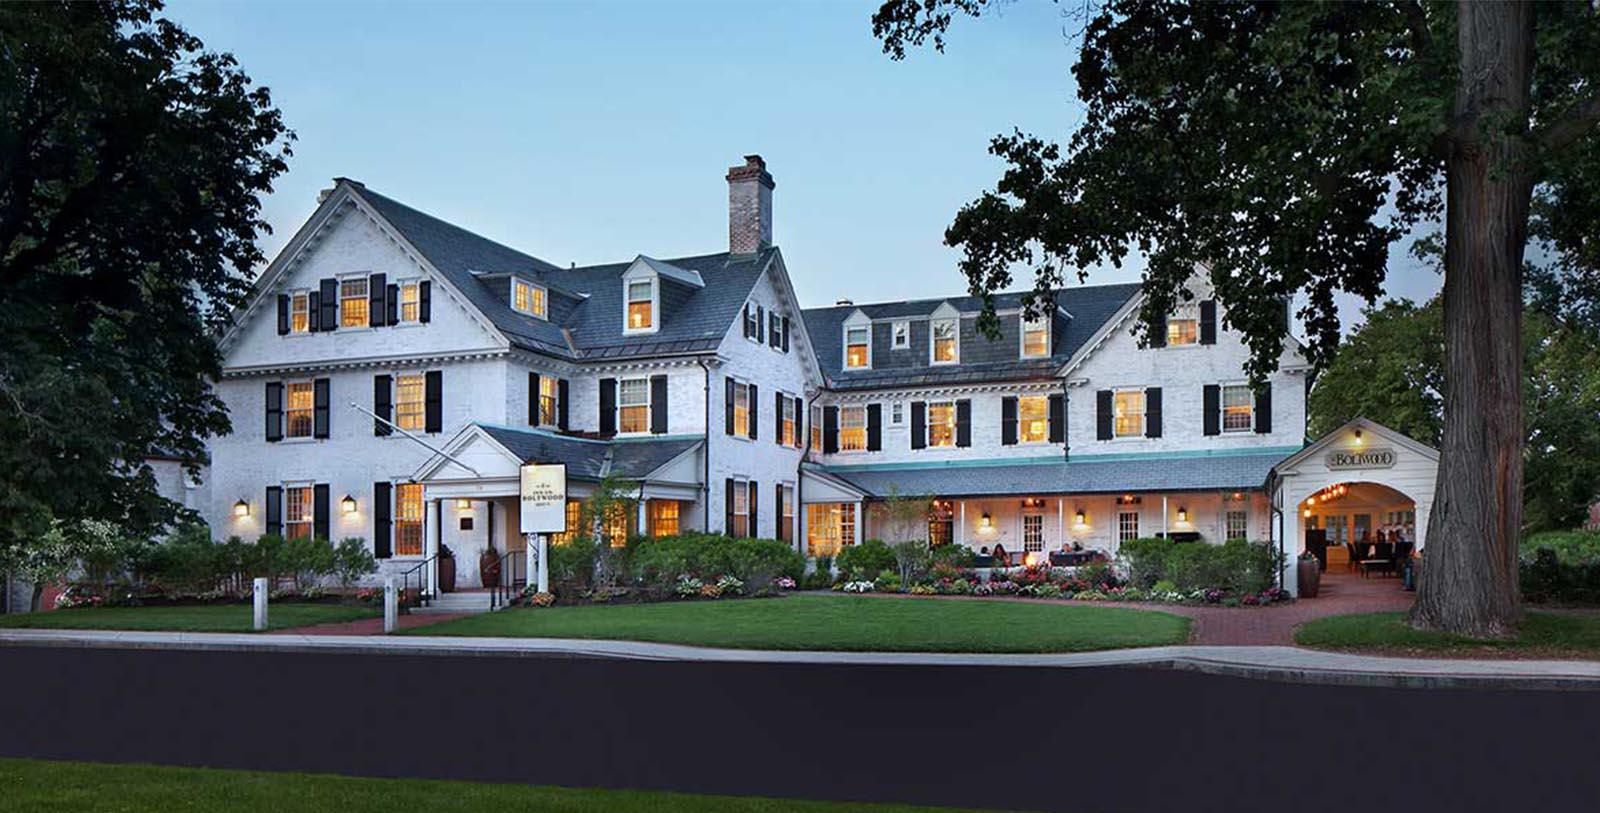 Image of Exterior Inn on Boltwood, in Amherst, Massachussetts, 1926, Member of Historic Hotels of America, Special Offers, Discounted Rates, Families, Romantic Escape, Honeymoons, Anniversaries, Reunions